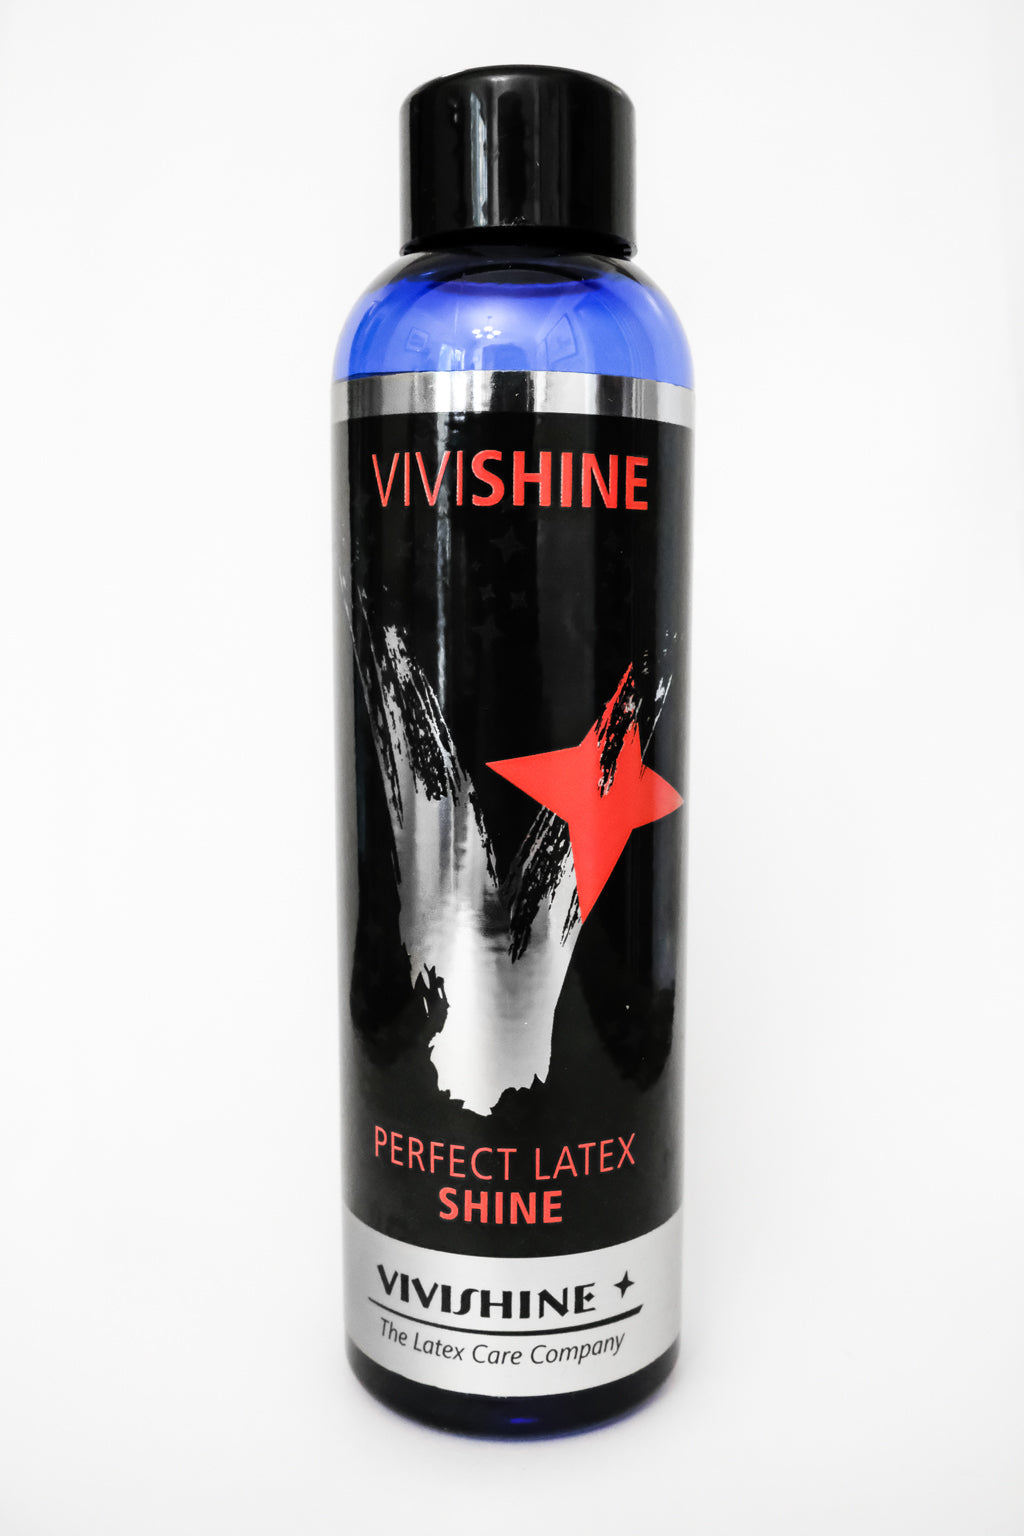 A bottle of ViviShine, a latex clothing cleaning product.